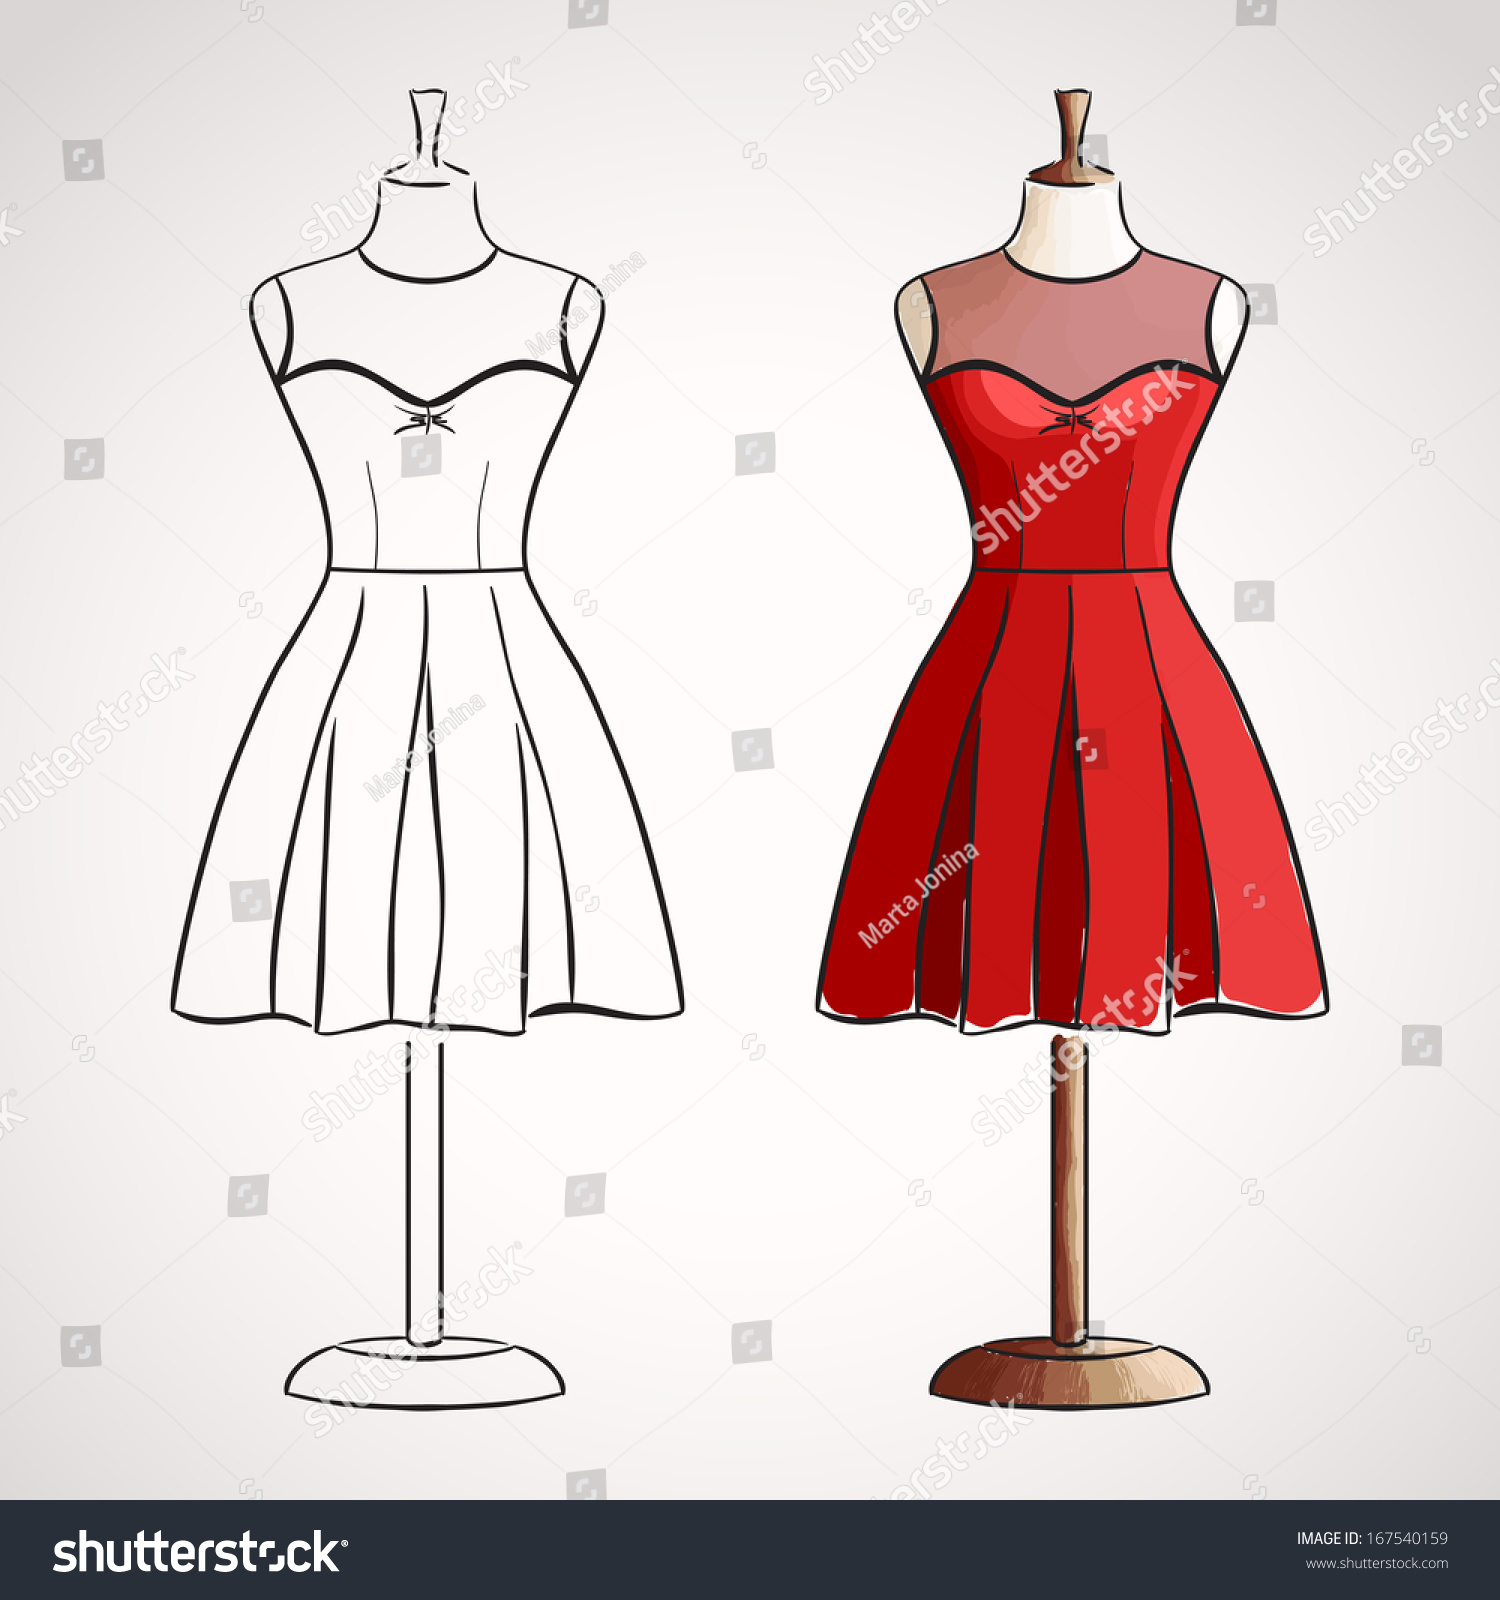 Hand Drawn Dress On Mannequin Silhouette Stock Vector